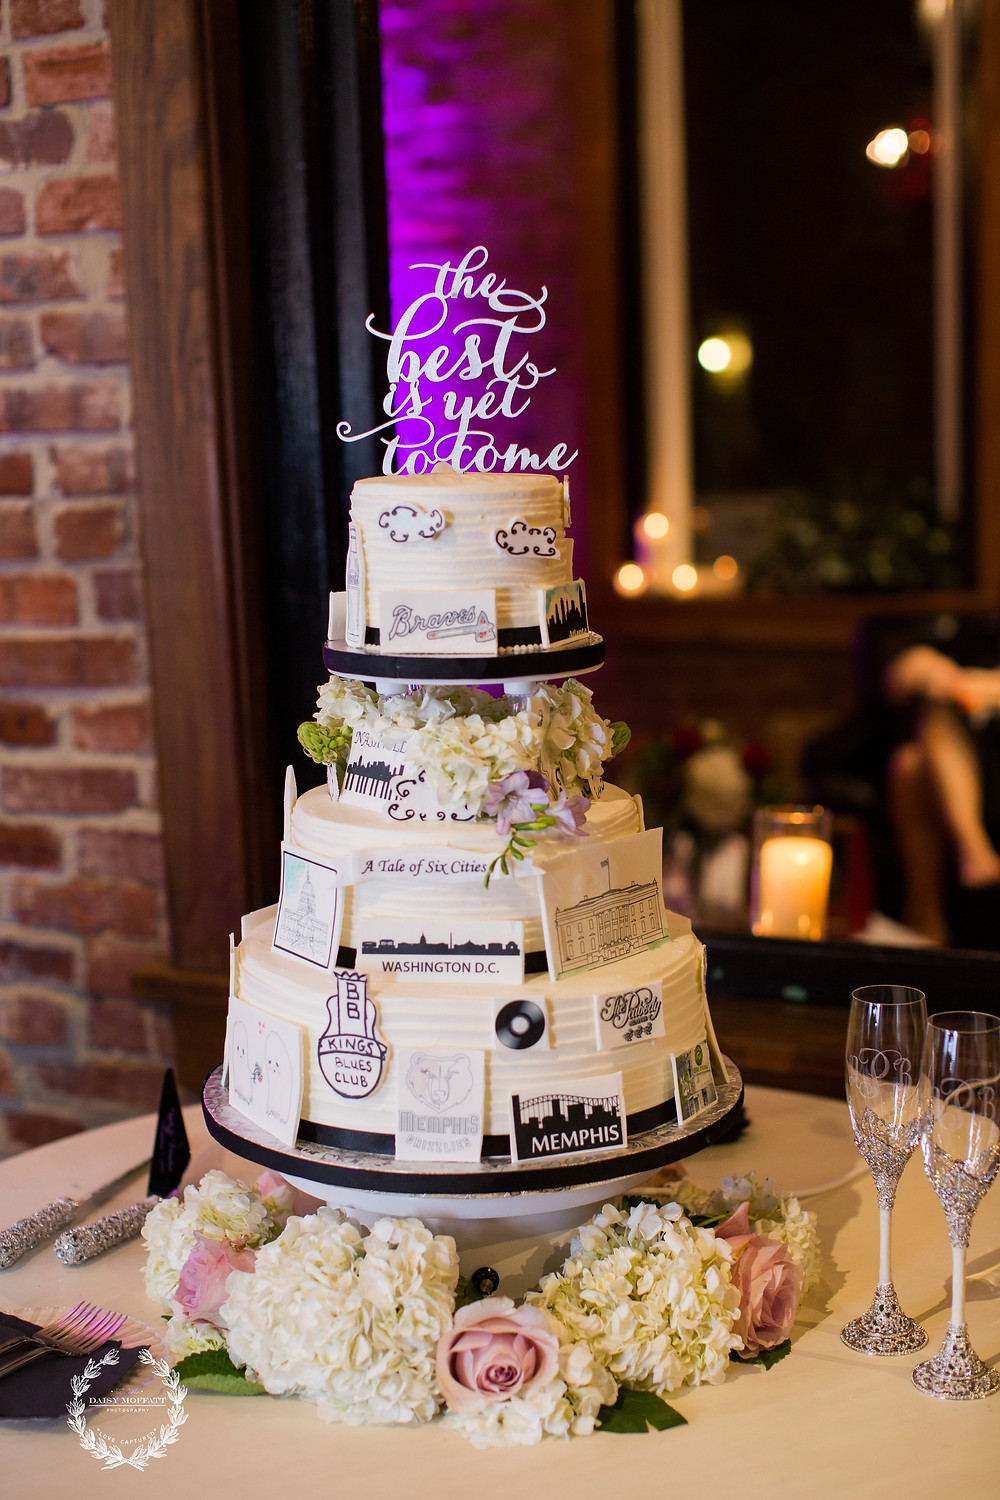 A Tale of Six Cities Wedding Cake